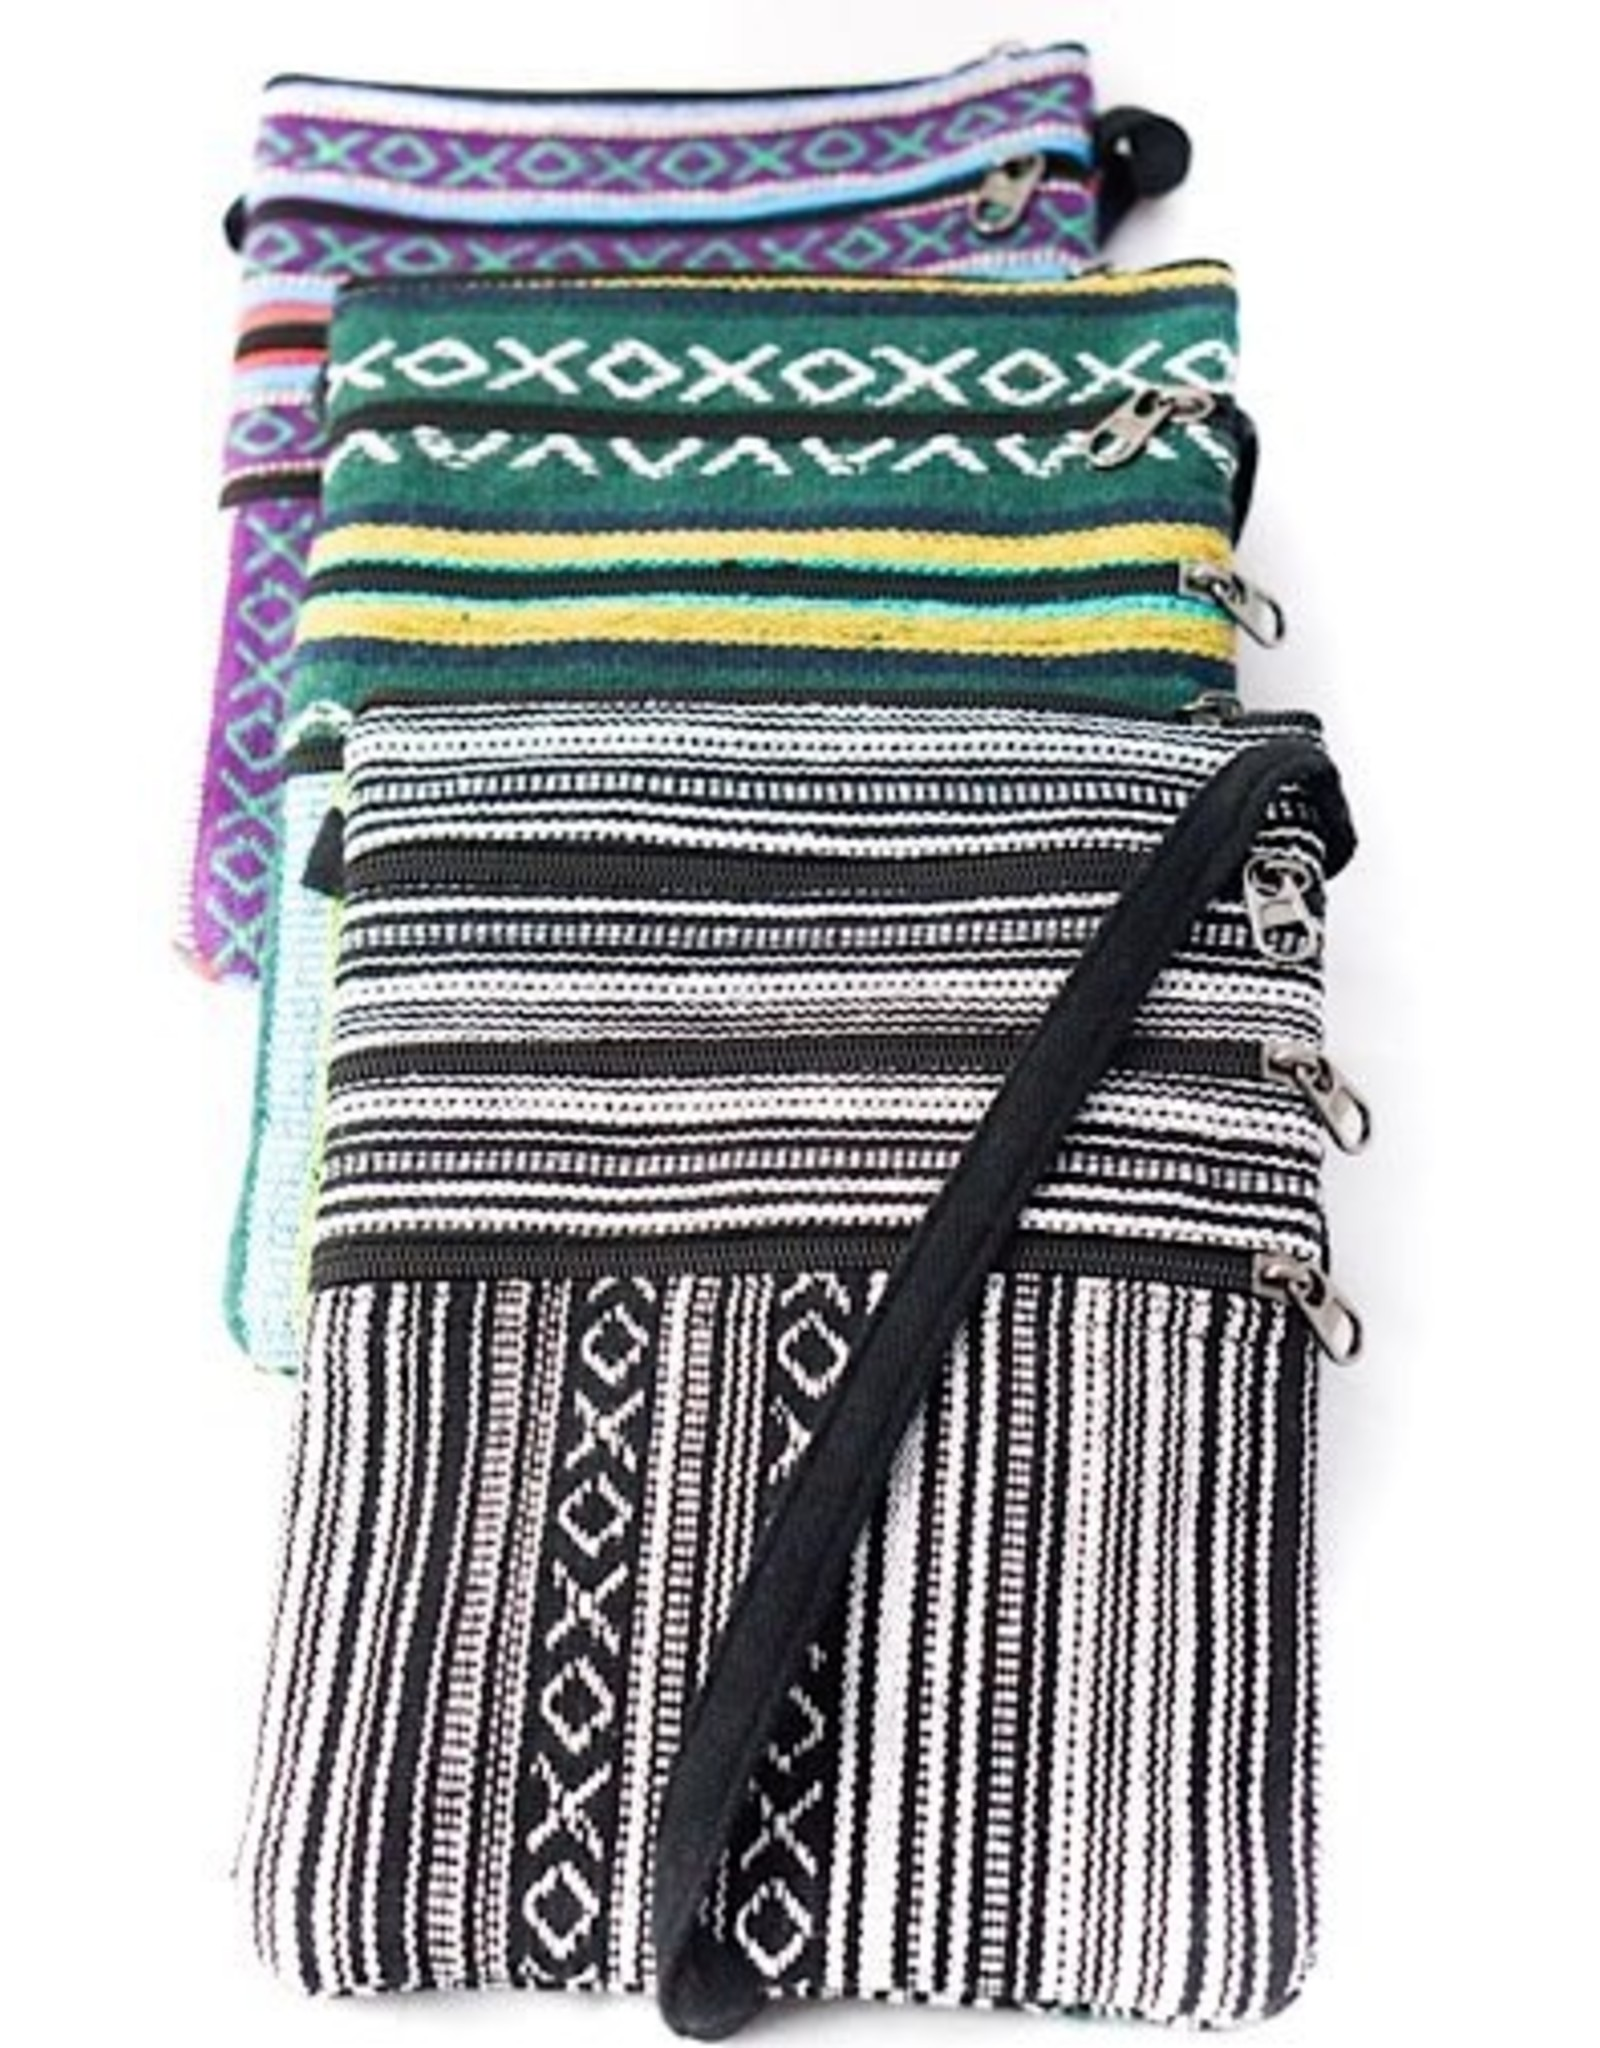 Gyari Cotton Passport Bag, Nepal